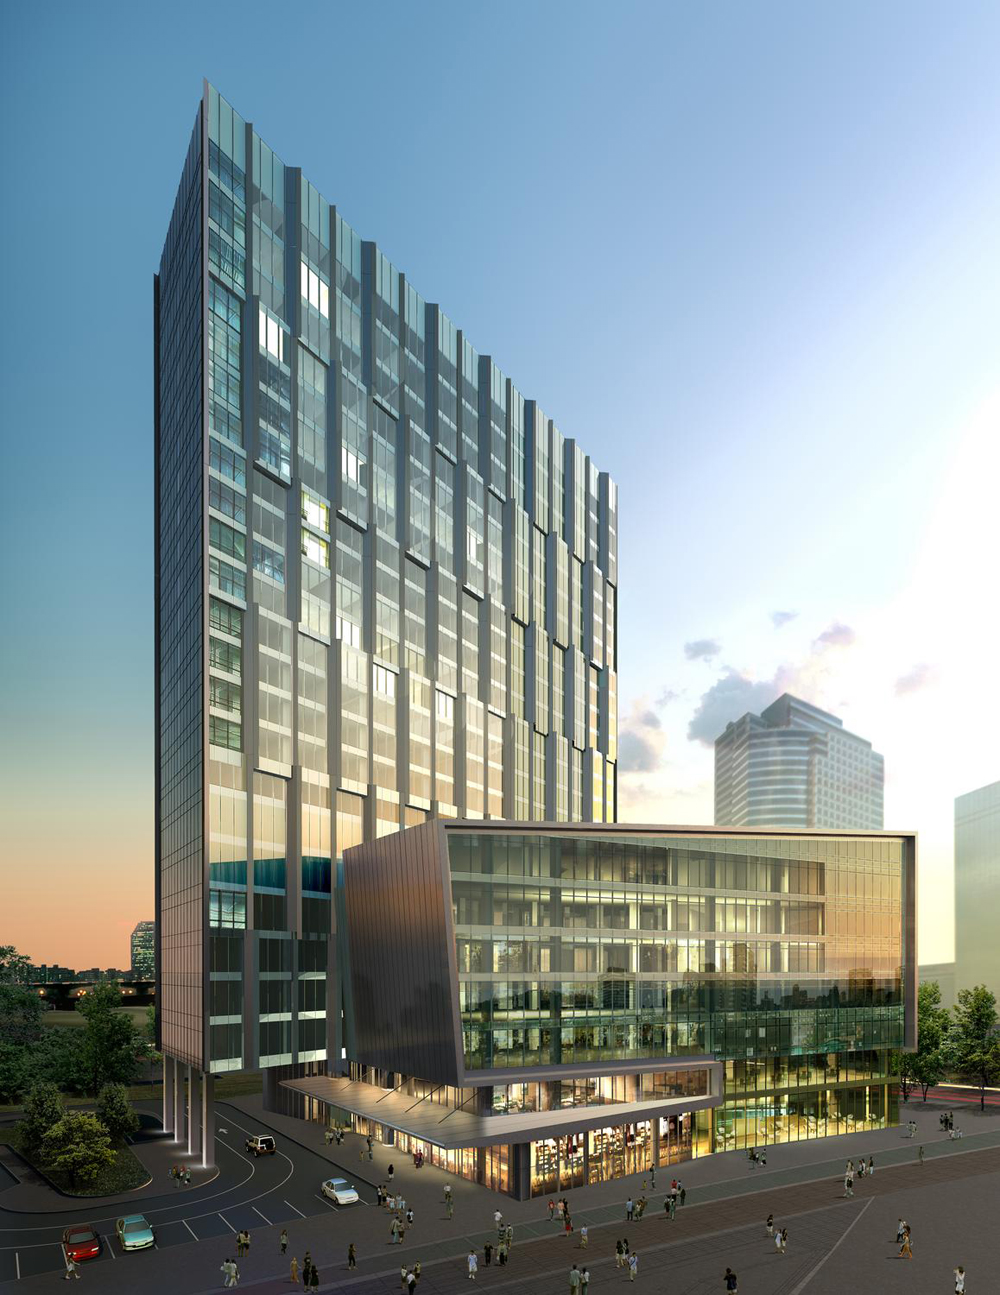 Sheraton Incheon Hotel Will Soon Be Unveiled In Korea S Newest Major Development Songdo City World Property Journal Global News Center